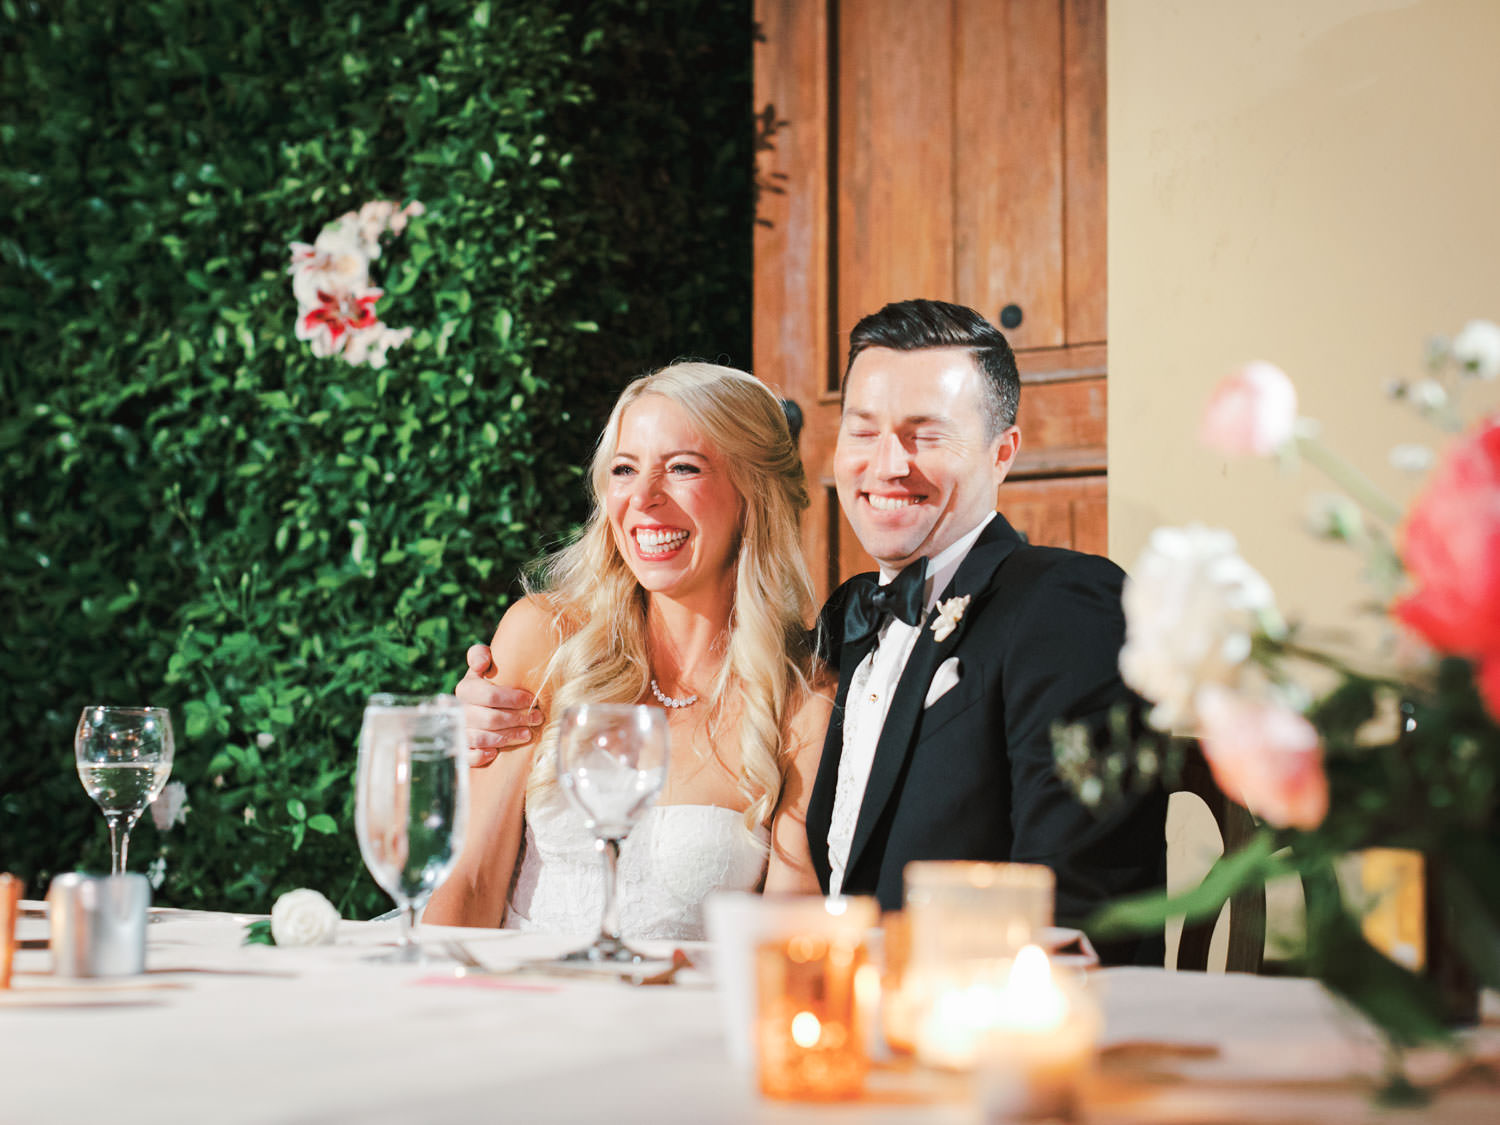 Bride and groom laughing at her father's toast. Miramonte Resort wedding reception. Photography by Cavin Elizabeth.